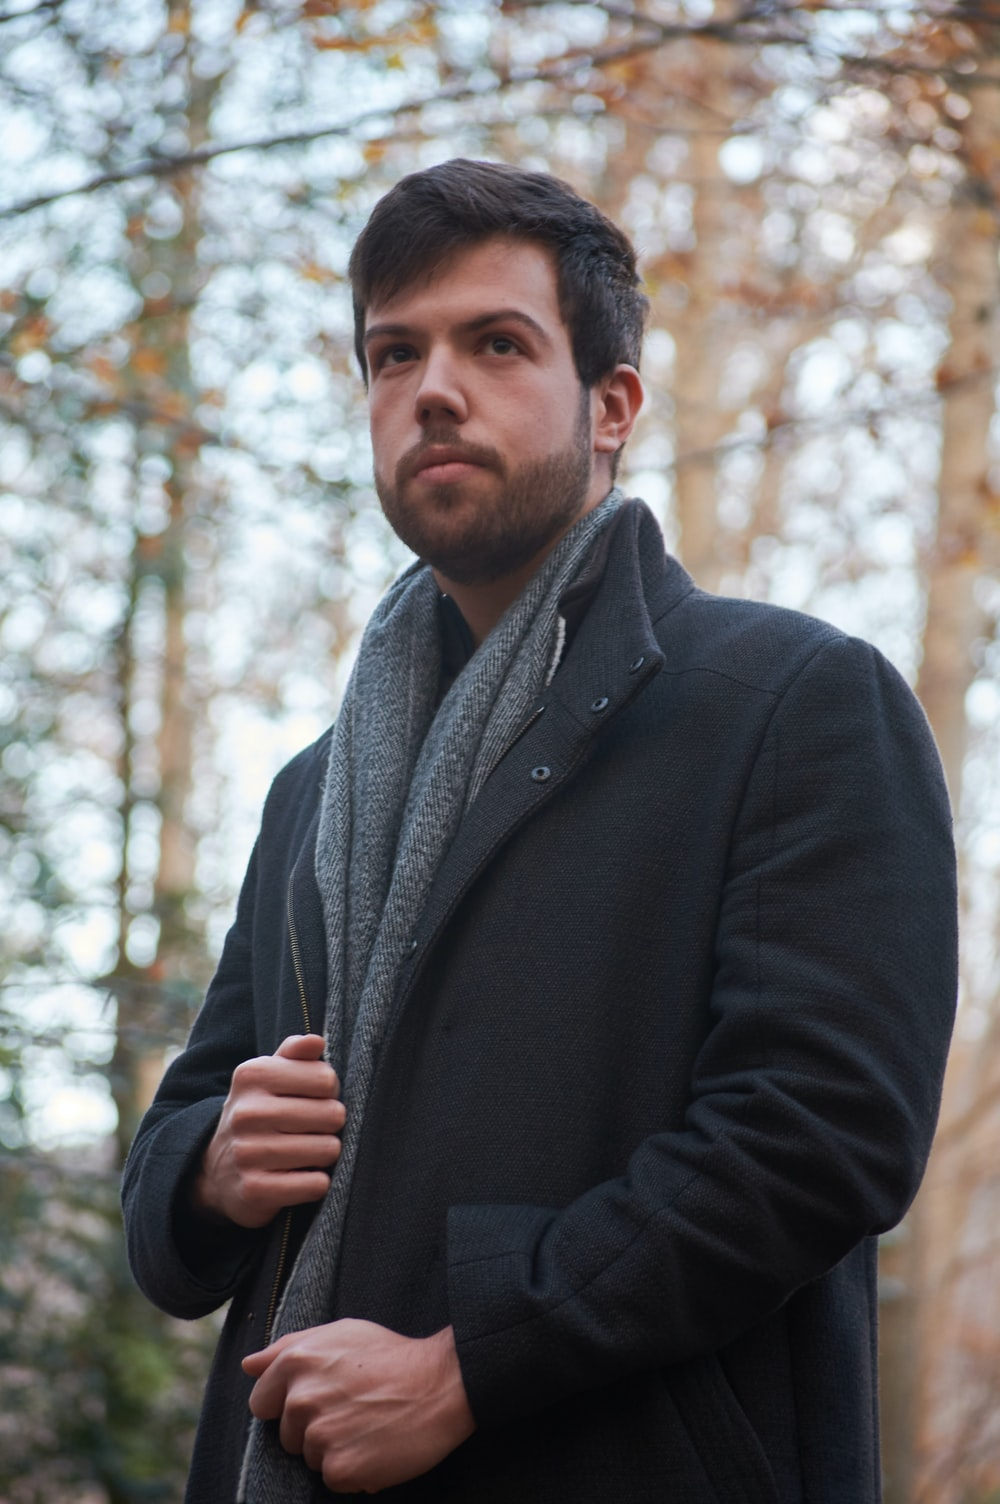 man in black coat standing near trees during daytime